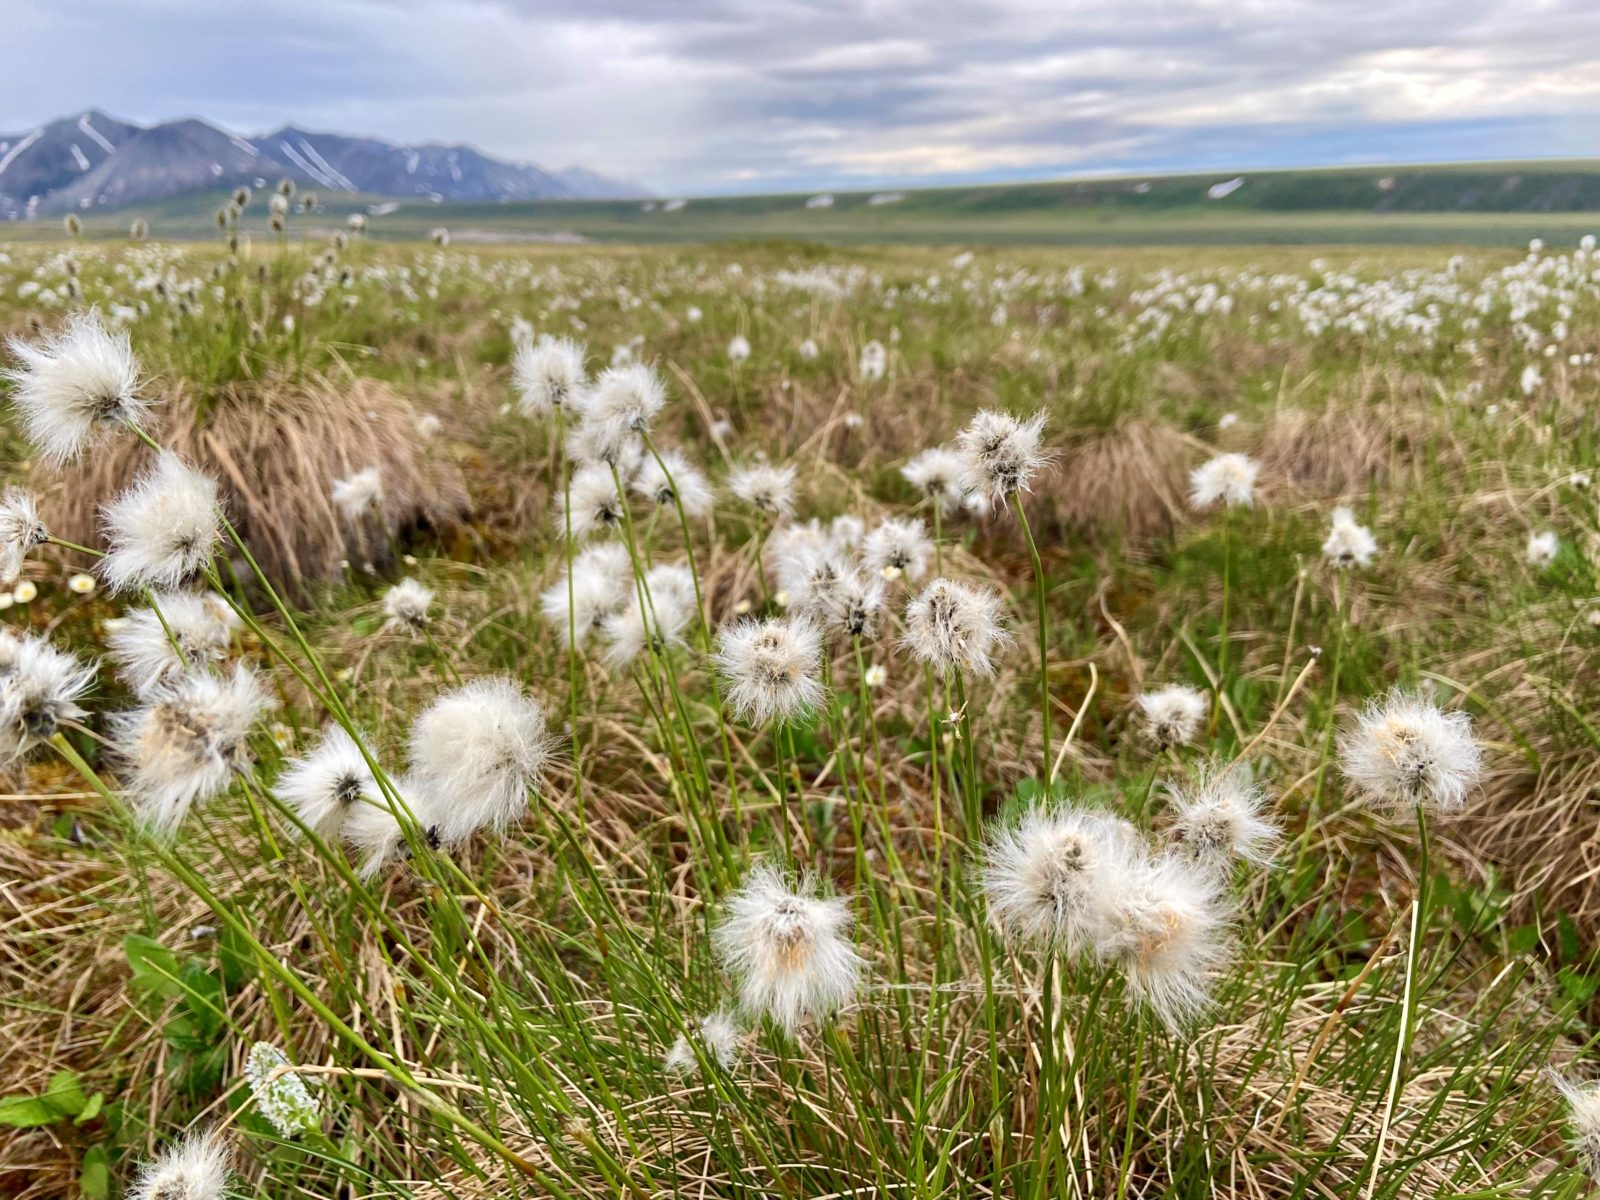 Arctic Refuge awe is bouncing on the tussocks at midnight. Here, a close foreground of tussock cottongrass gives way to distant mountains.